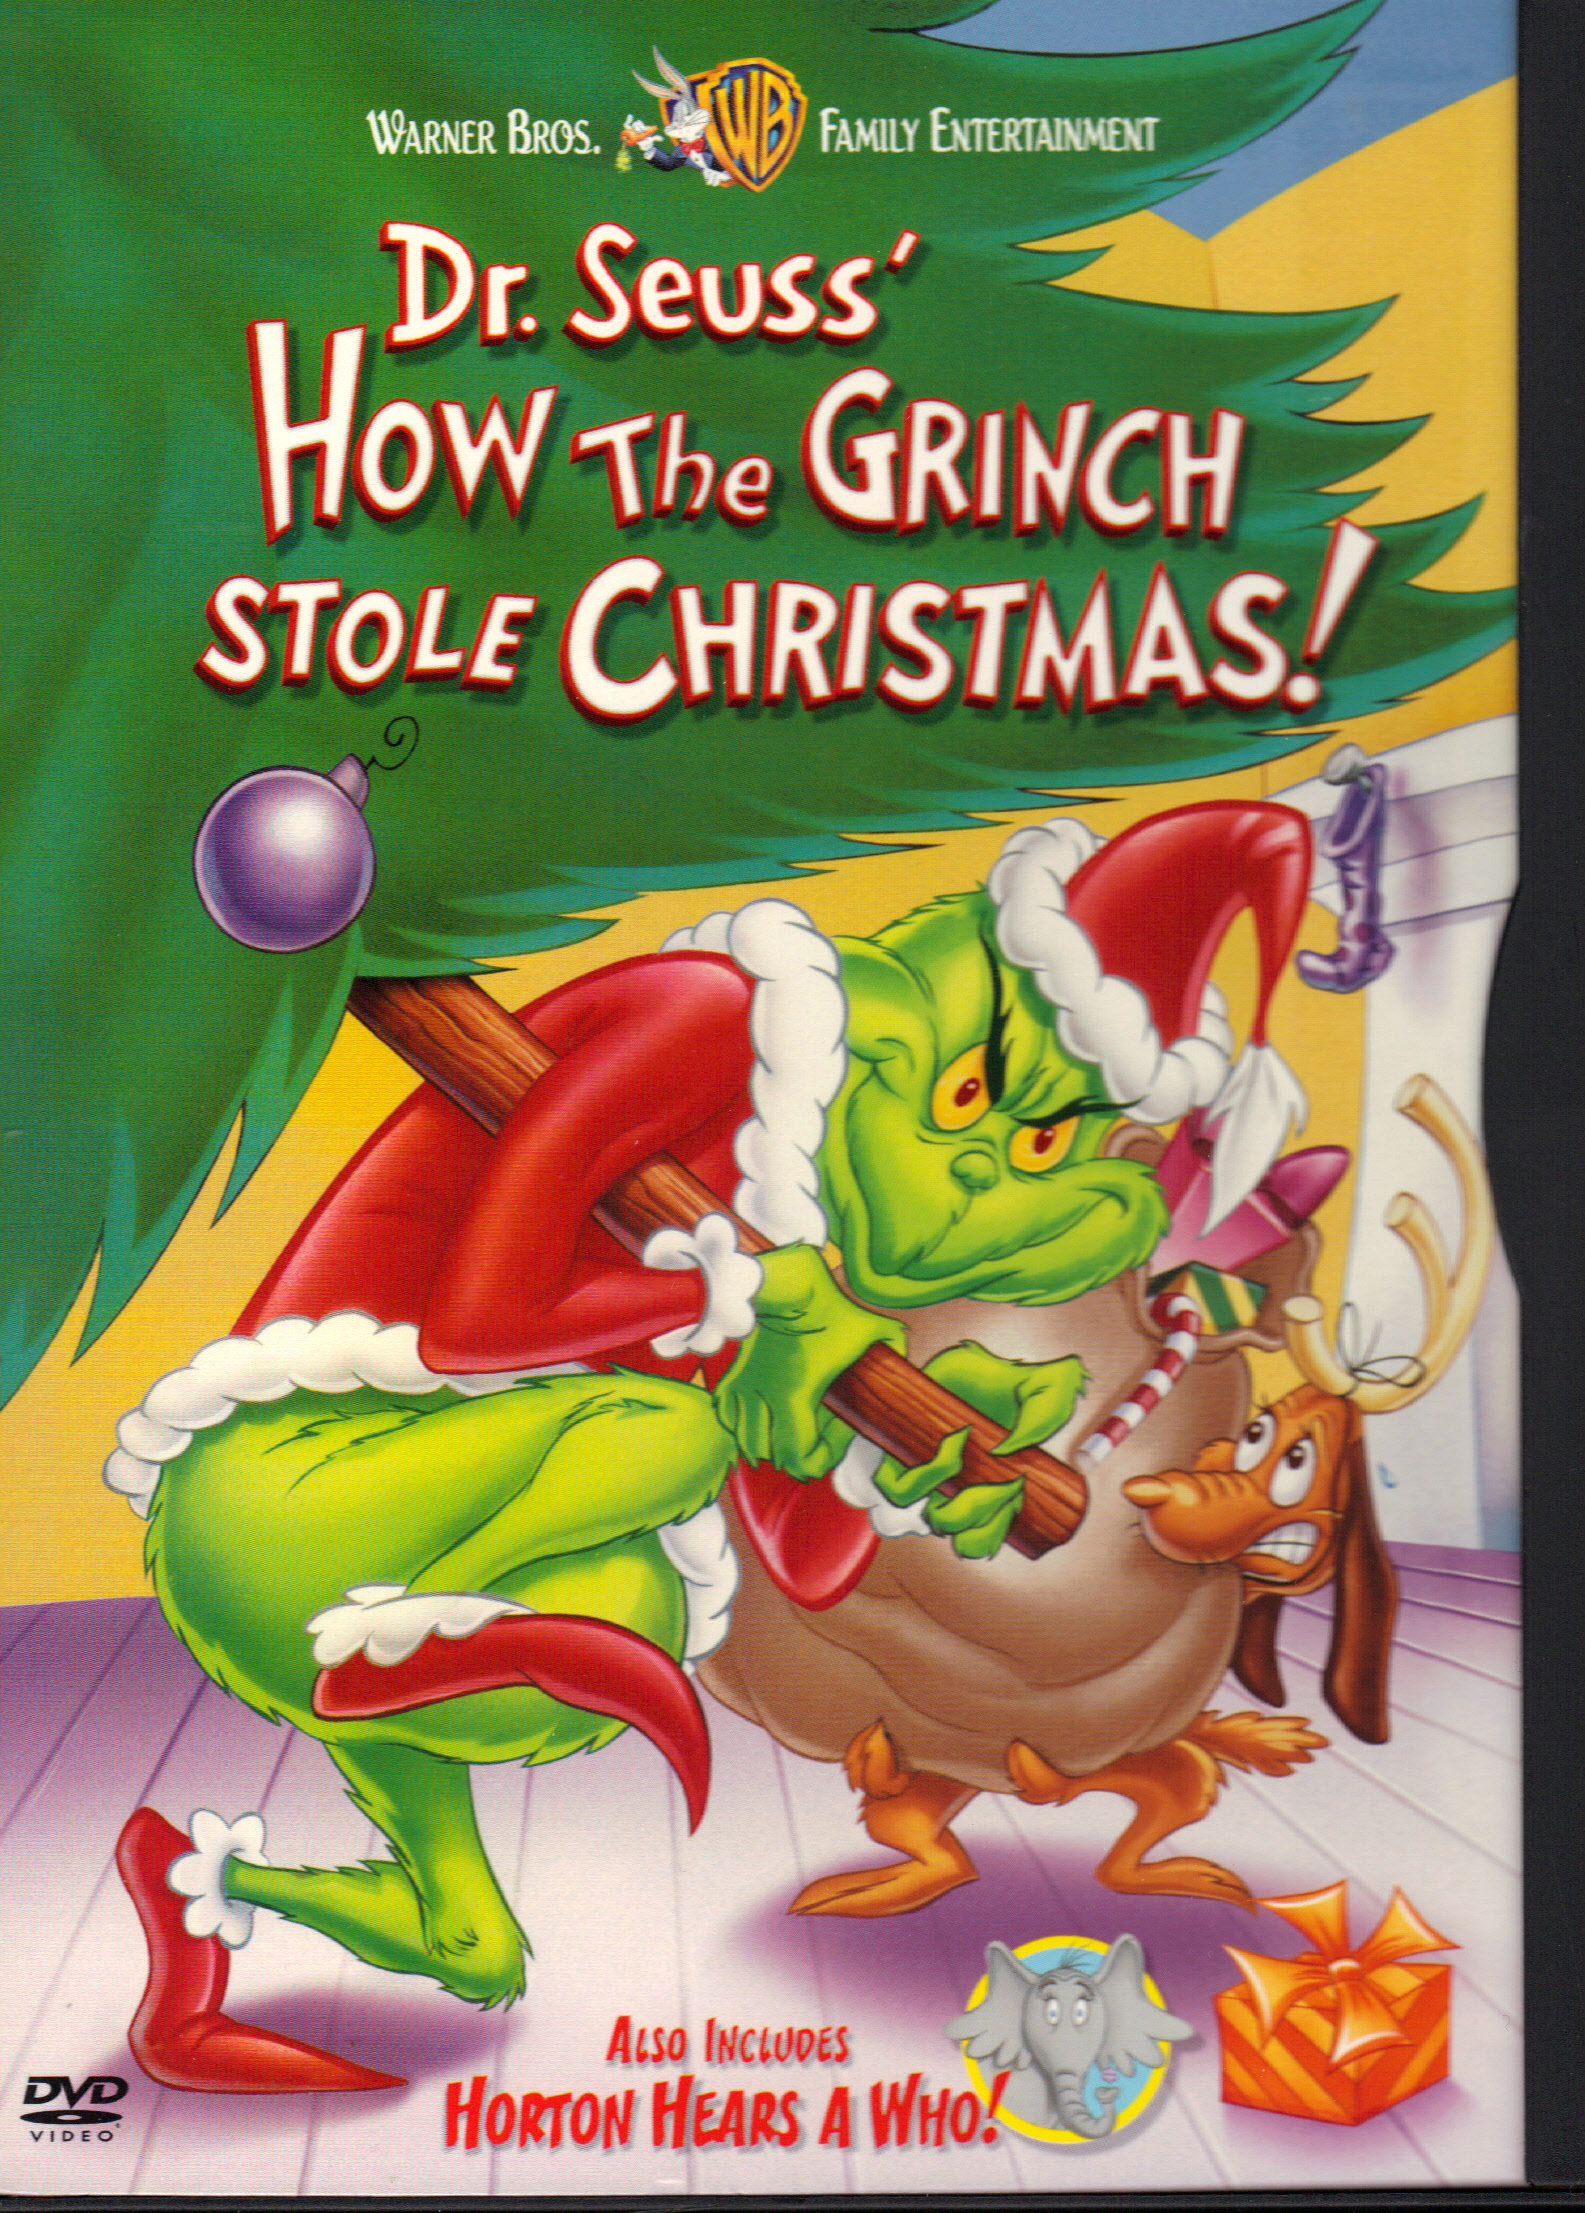 HOW THE GRINCH STOLE CHRISTMAS! and HORTON HEARS A WHO!